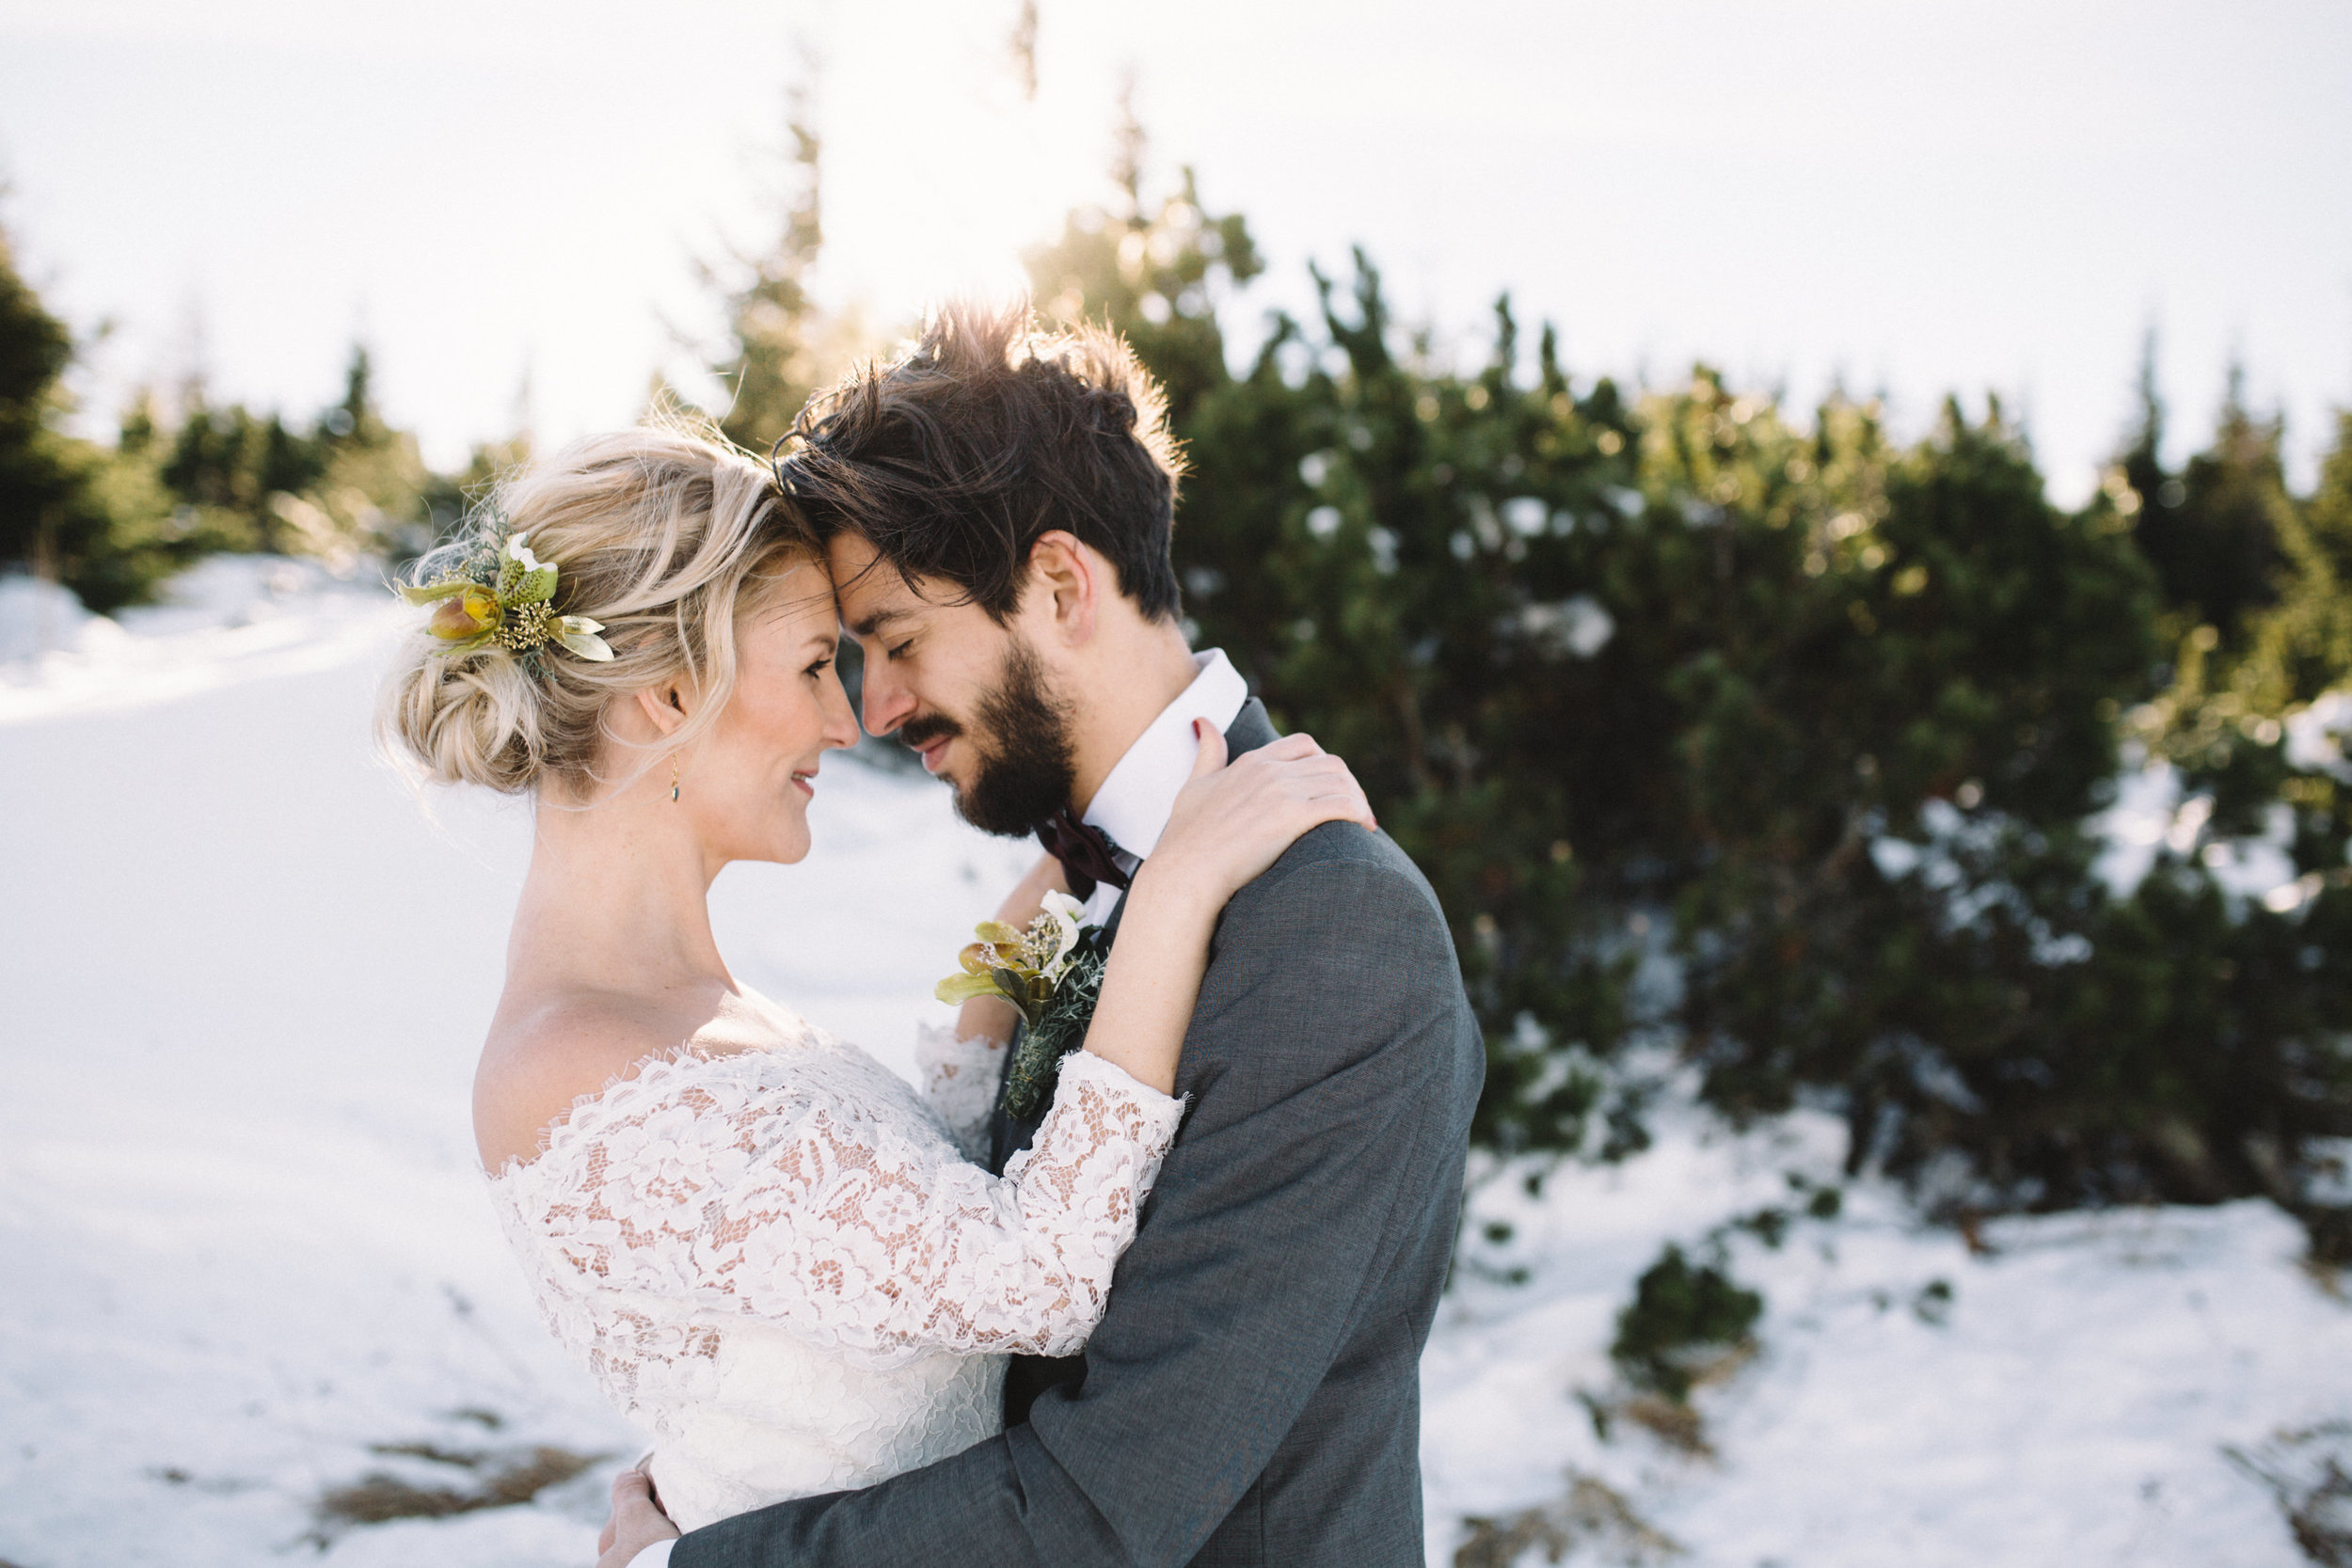 Moutain Winter Wedding-14.jpg